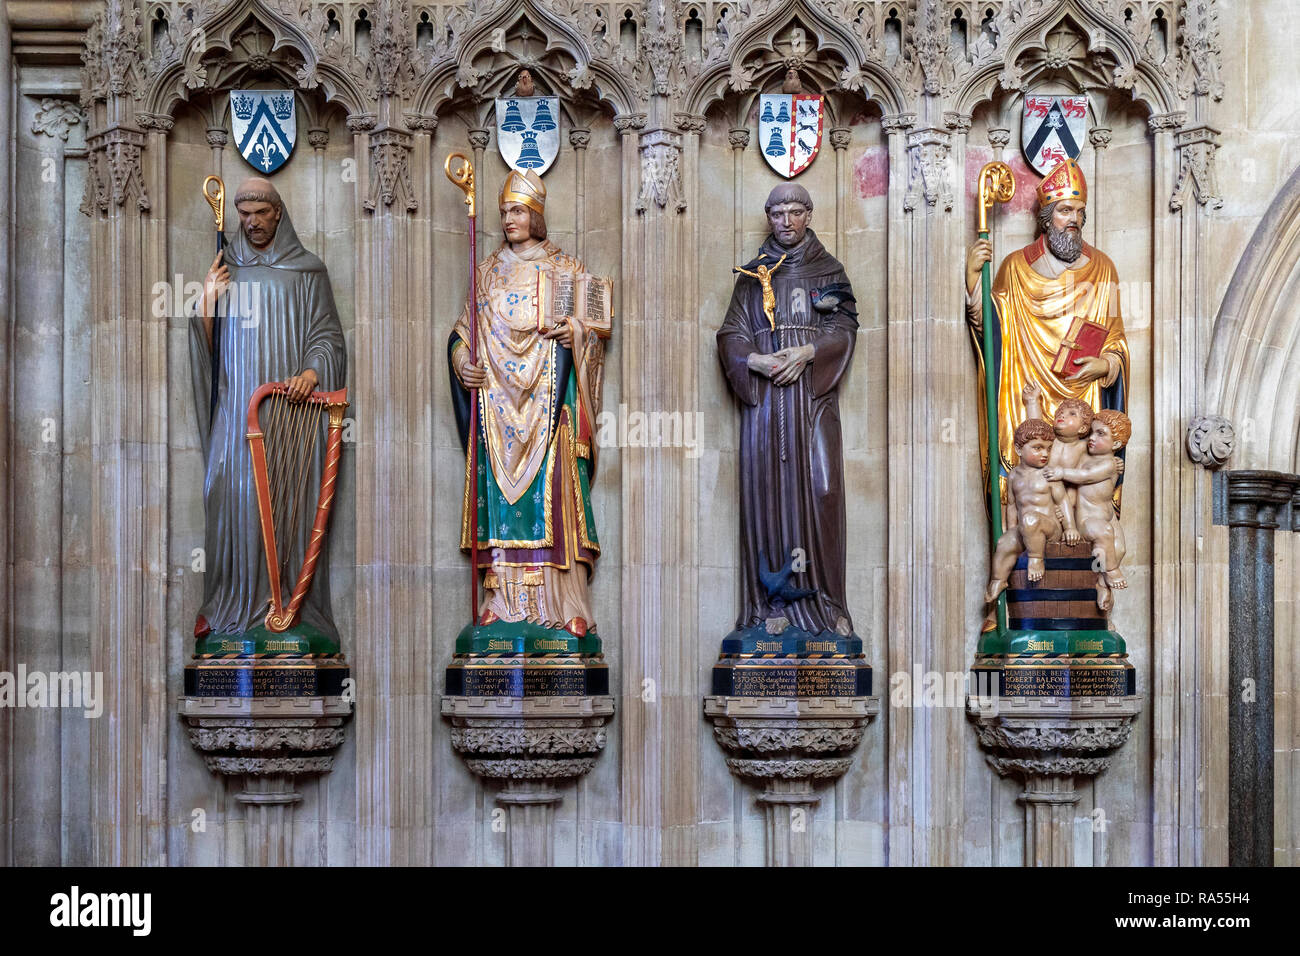 Row of four saints statues in Salisbury Cathedral - Stock Image